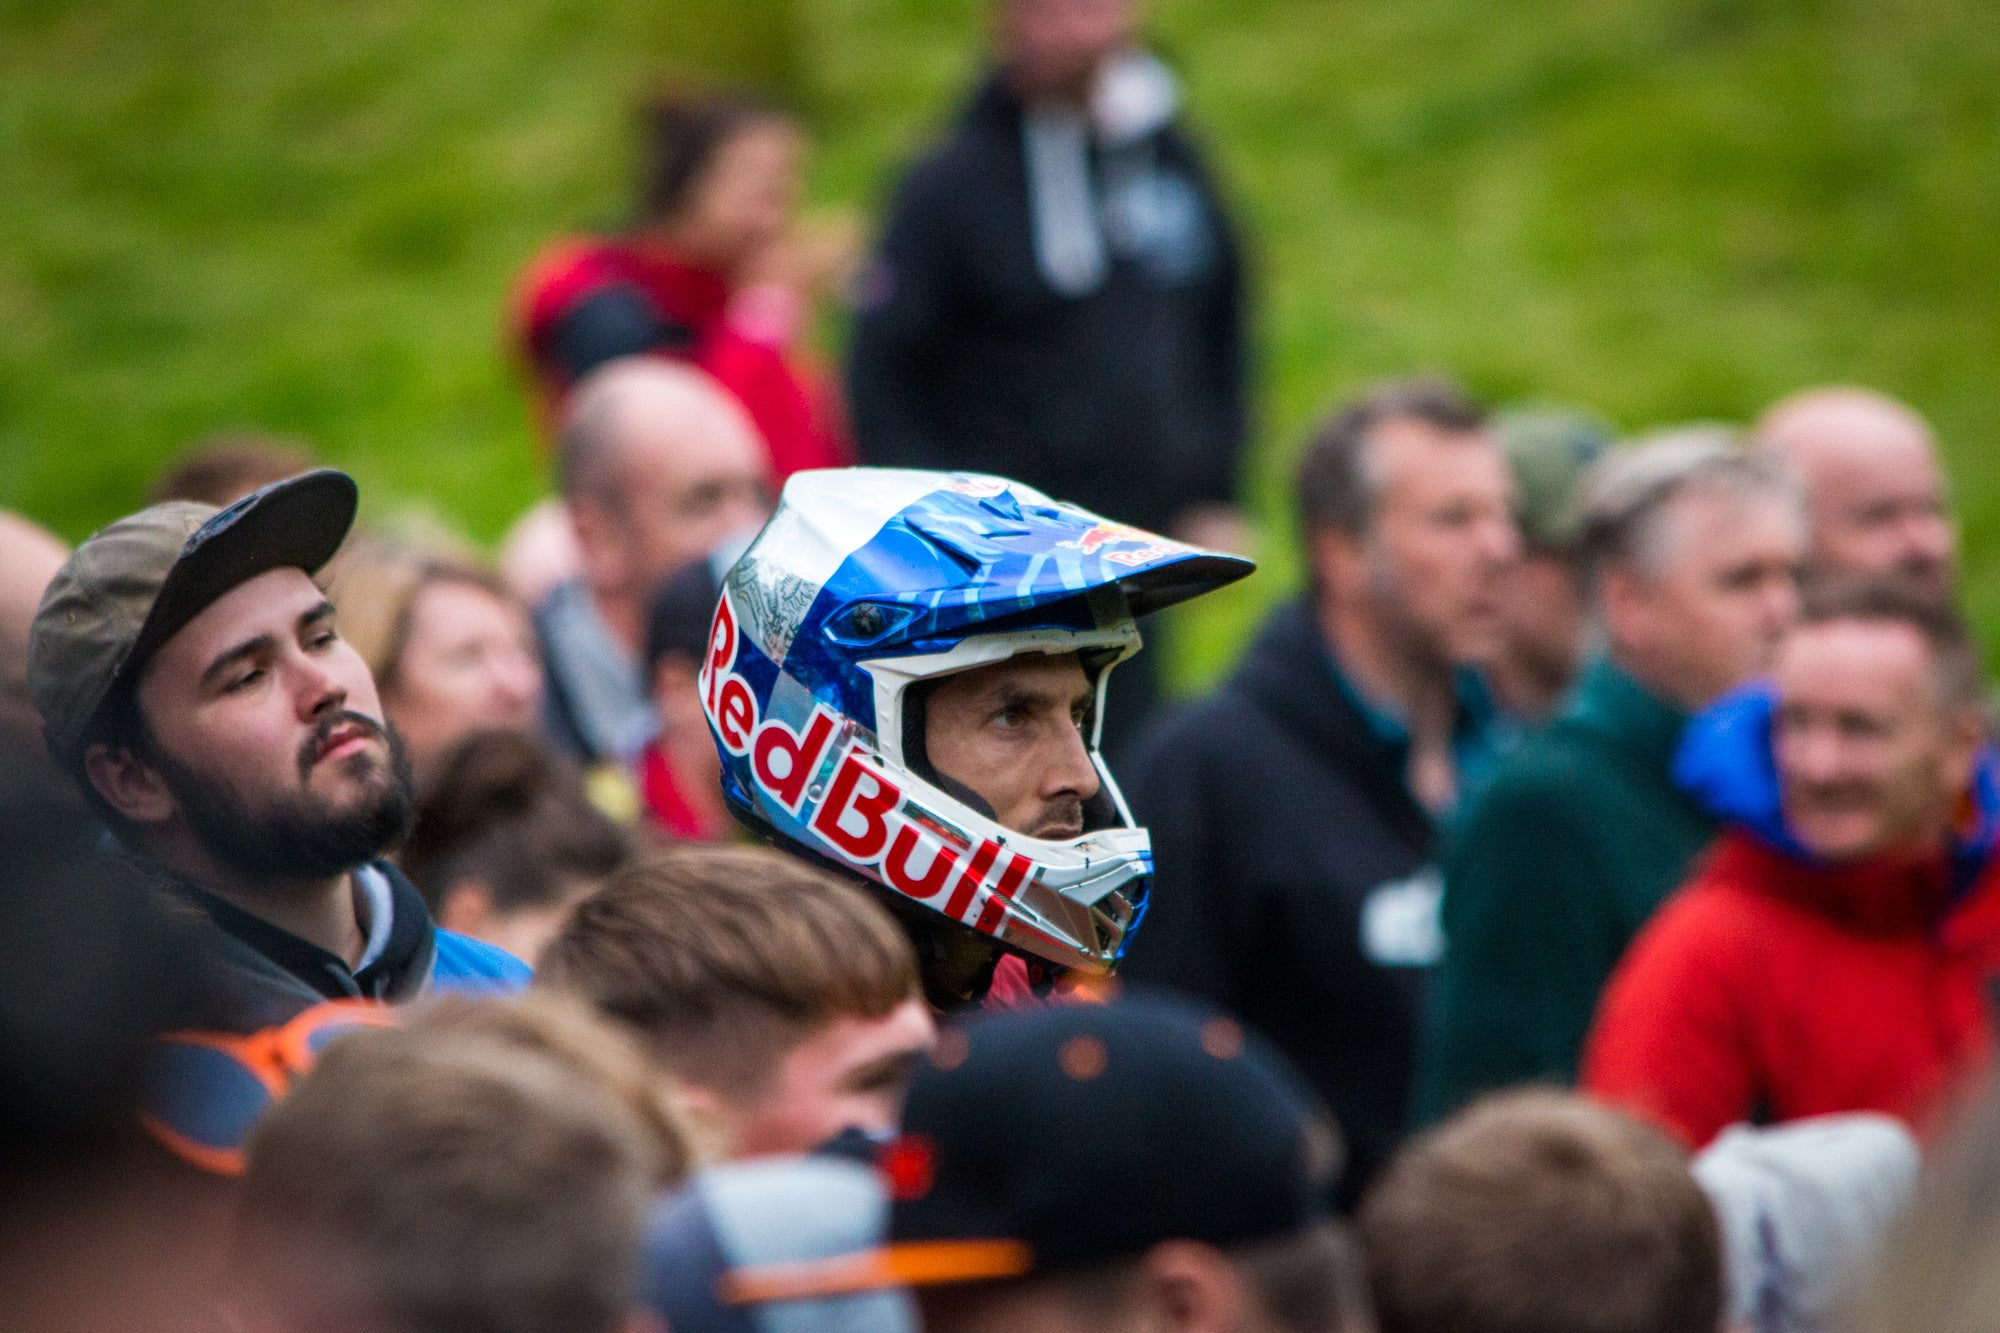 Gee Atherton watching Bernard Kerr's ride at Red Bull Hardline 2019